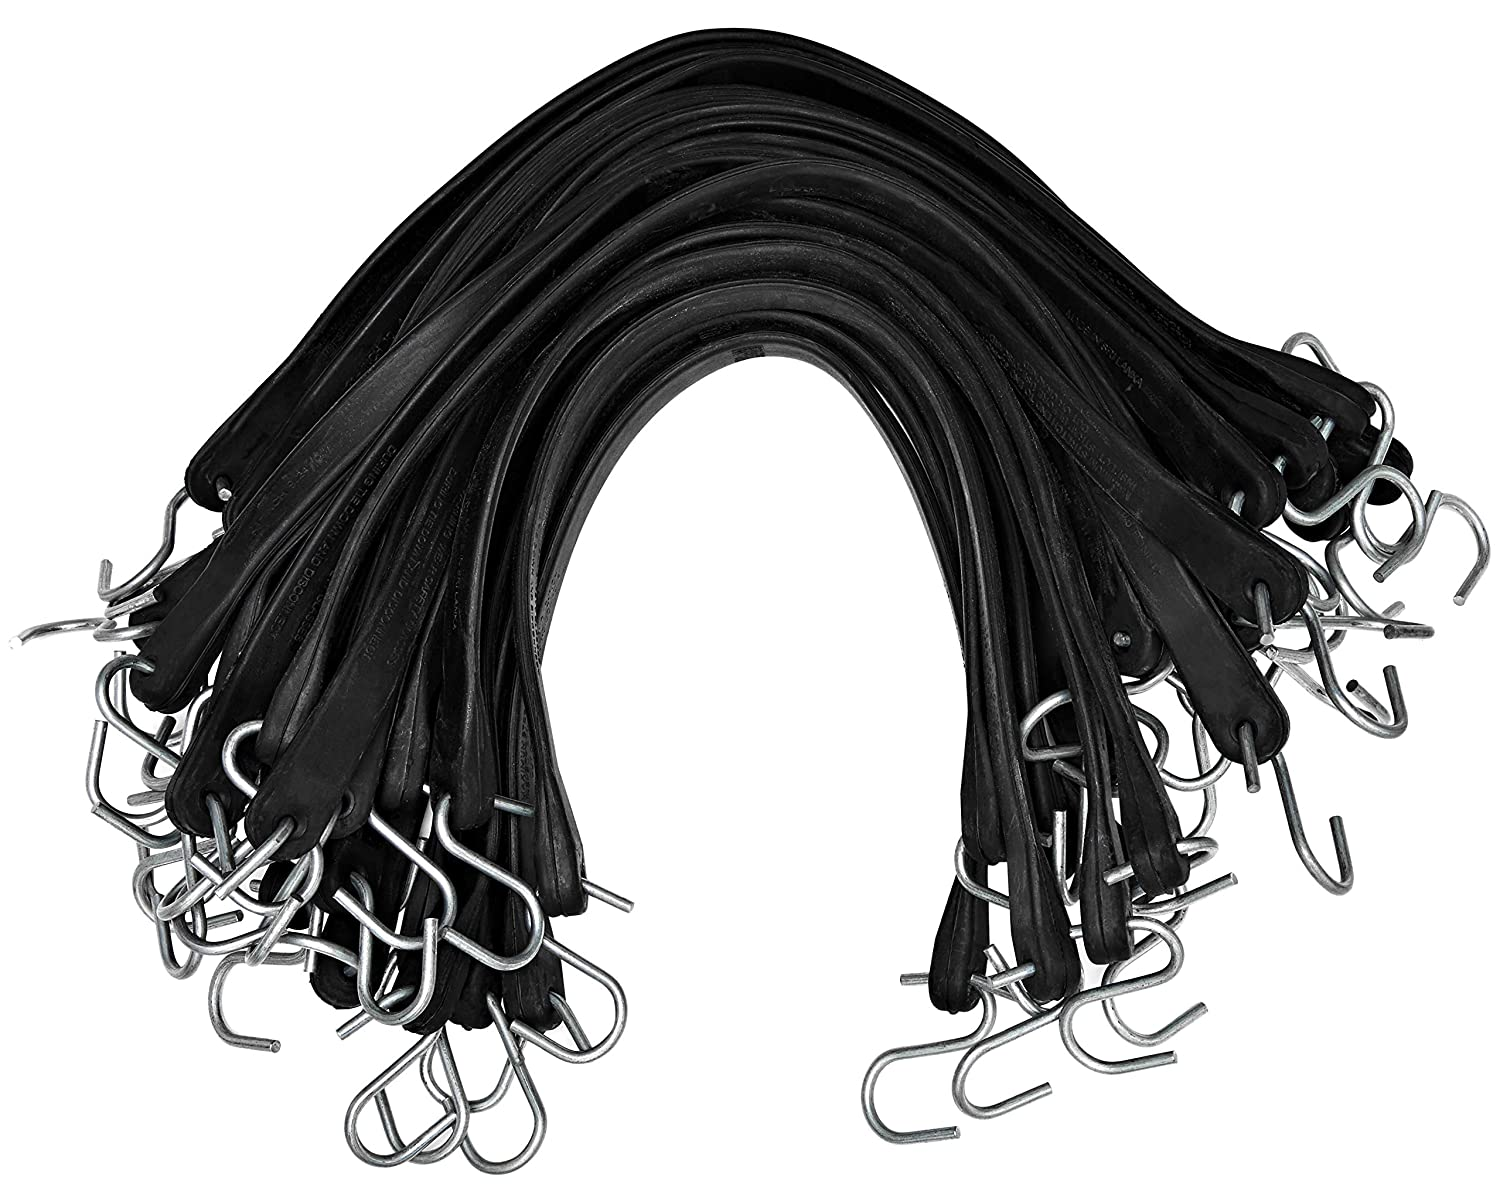 Tarp Tiedown Bungee Straps 32 Max Stretch 21 Pack of 50 Trucking Bundle kitchentoolz Rubber Bungee Cords with Hooks Heavy-Duty Tarp Straps